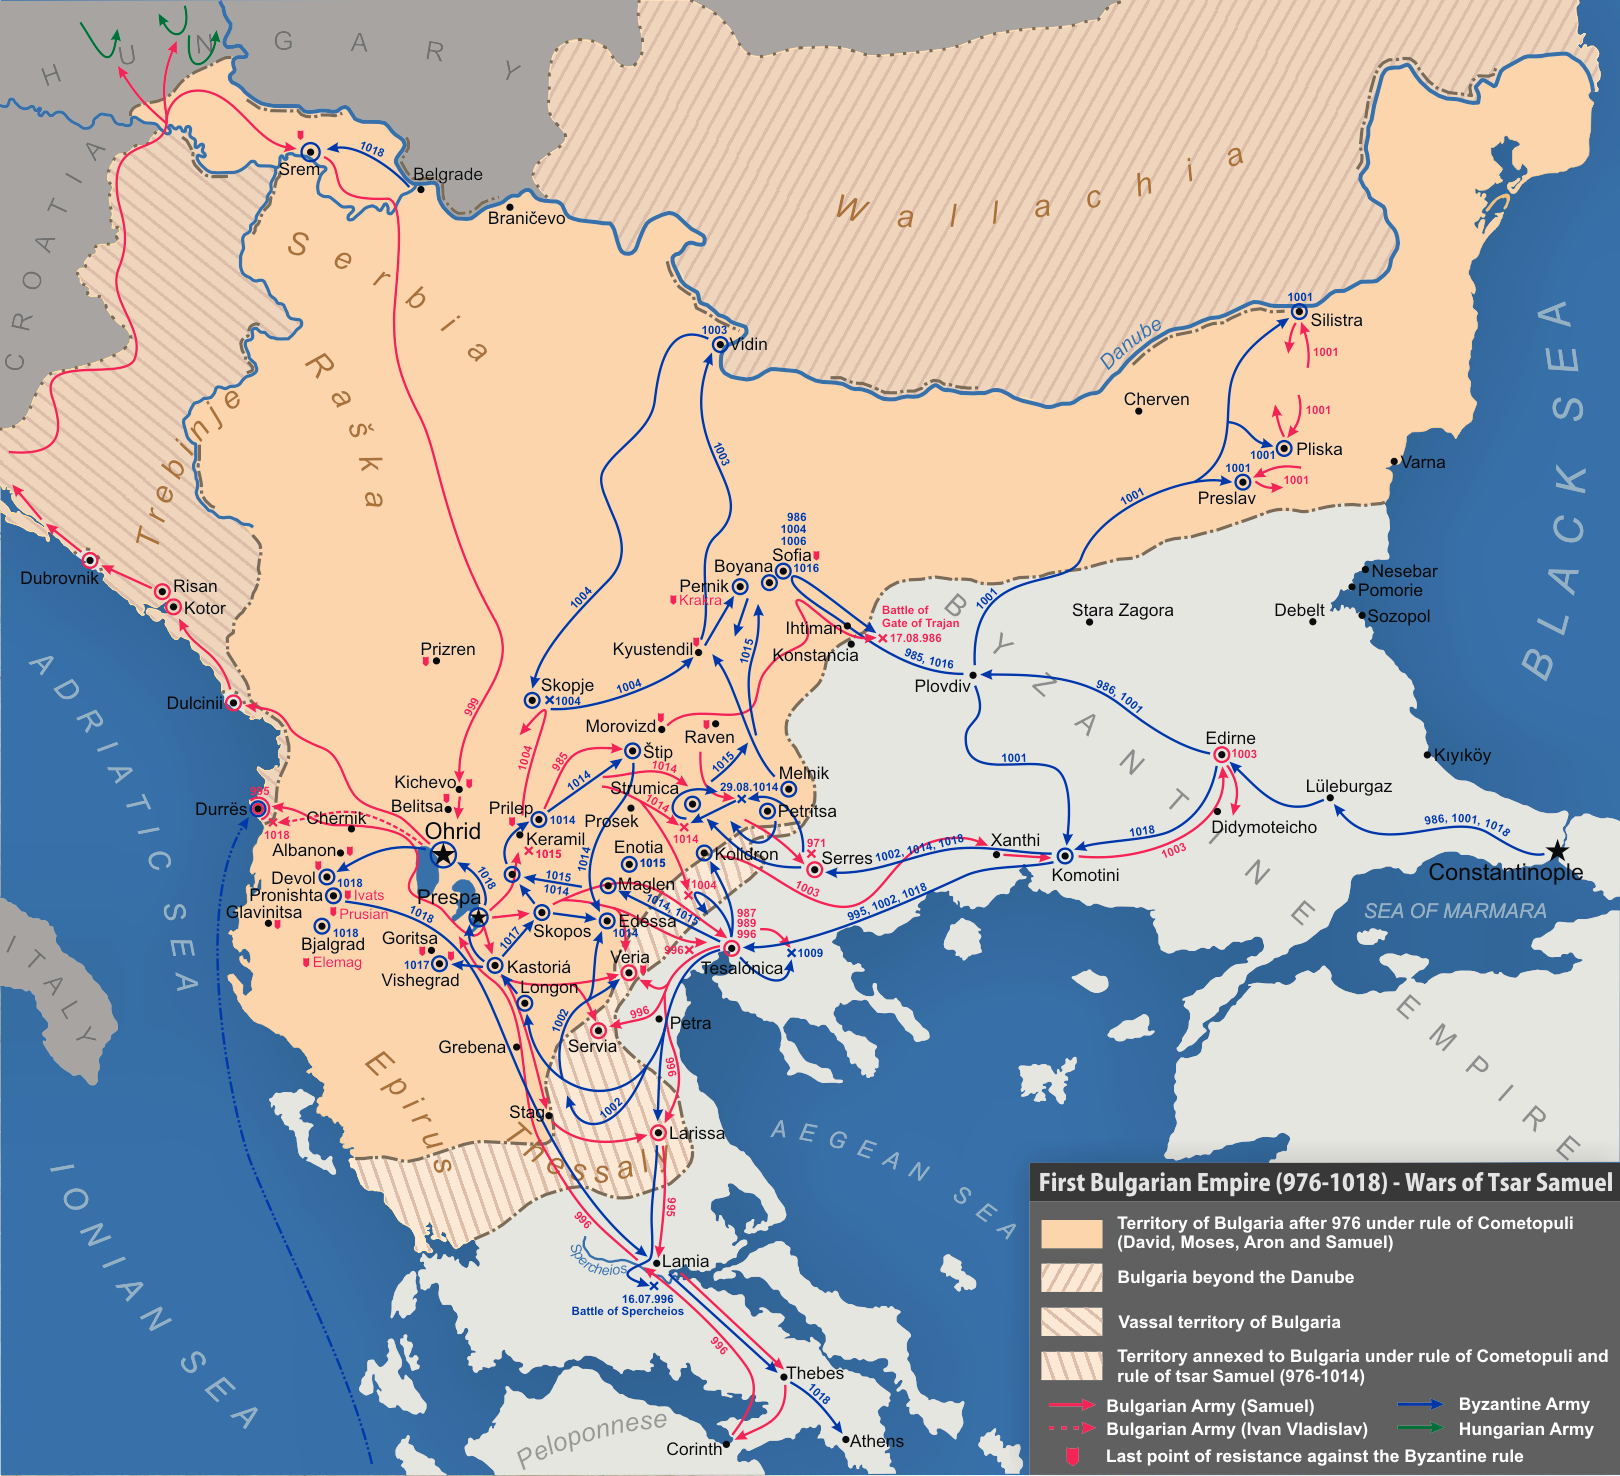 http://upload.wikimedia.org/wikipedia/commons/8/8b/First_Bulgarian_Empire_(976-1018).png